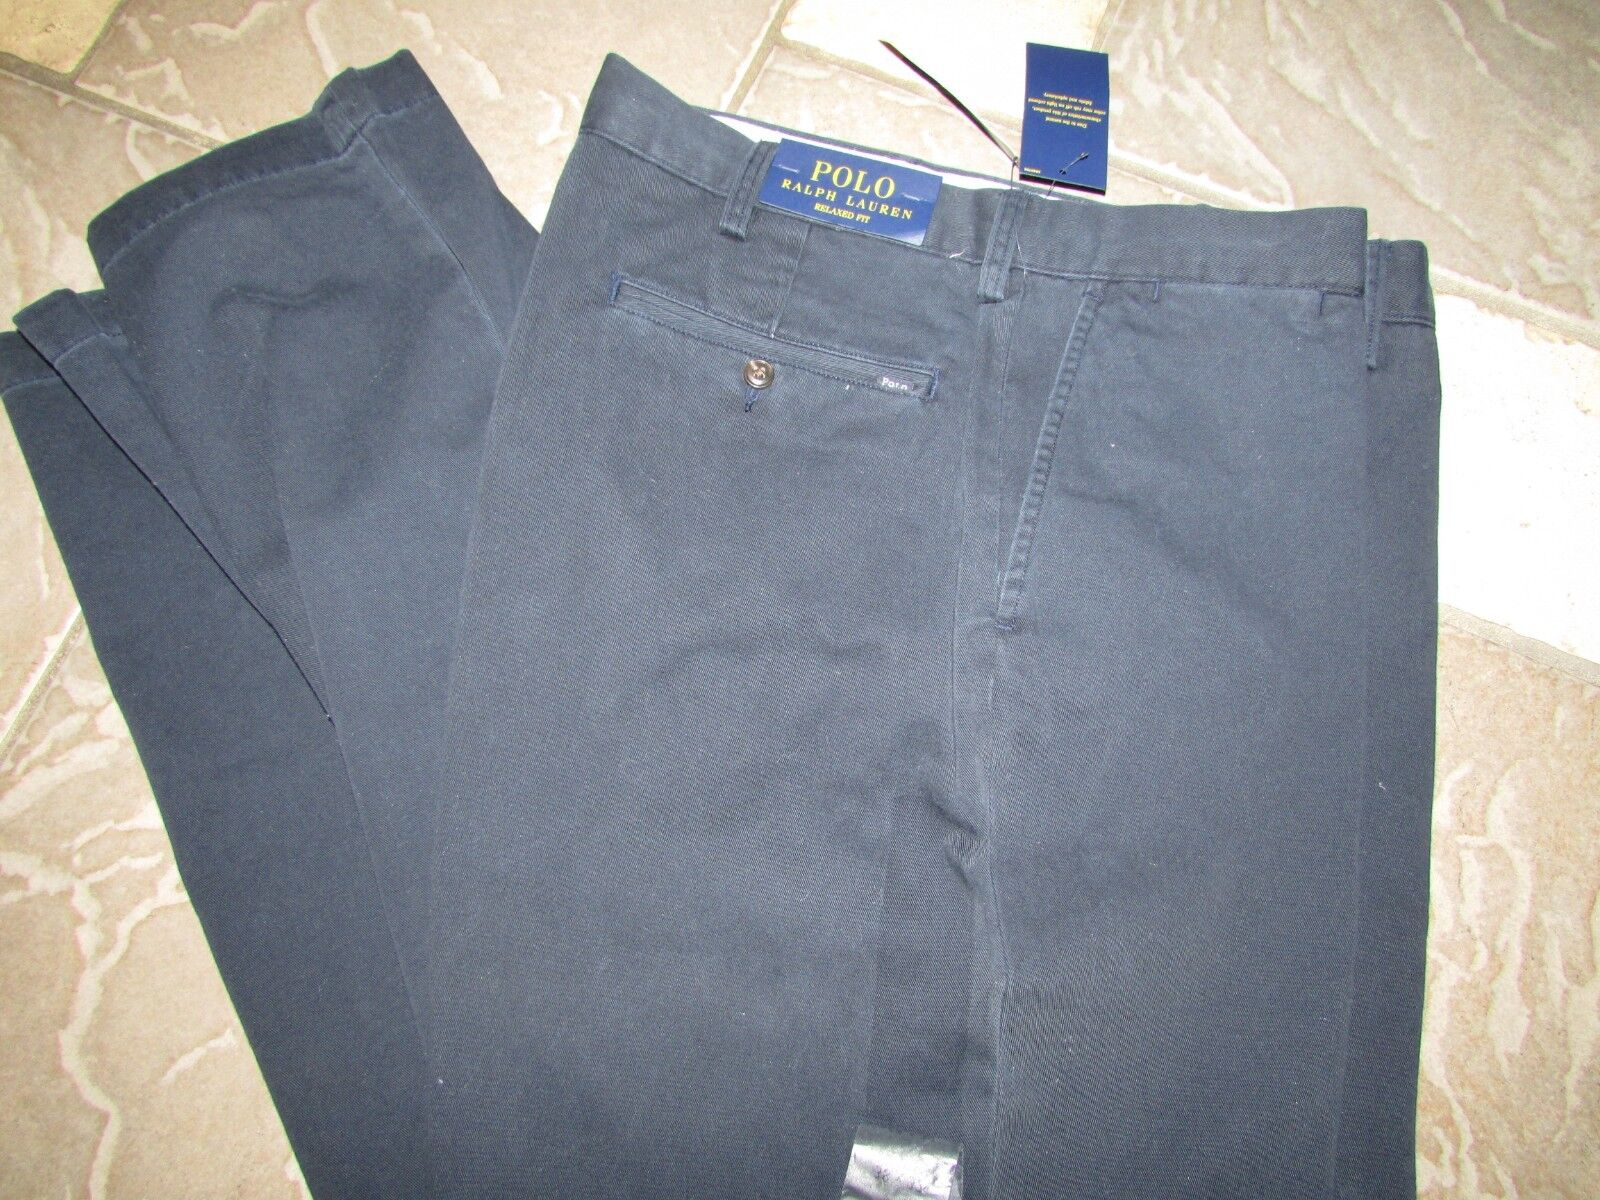 NEW POLO RALPH LAUREN NAVY RELAXED FIT PANTS MENS 38X32 FLAT FRONT COTTON